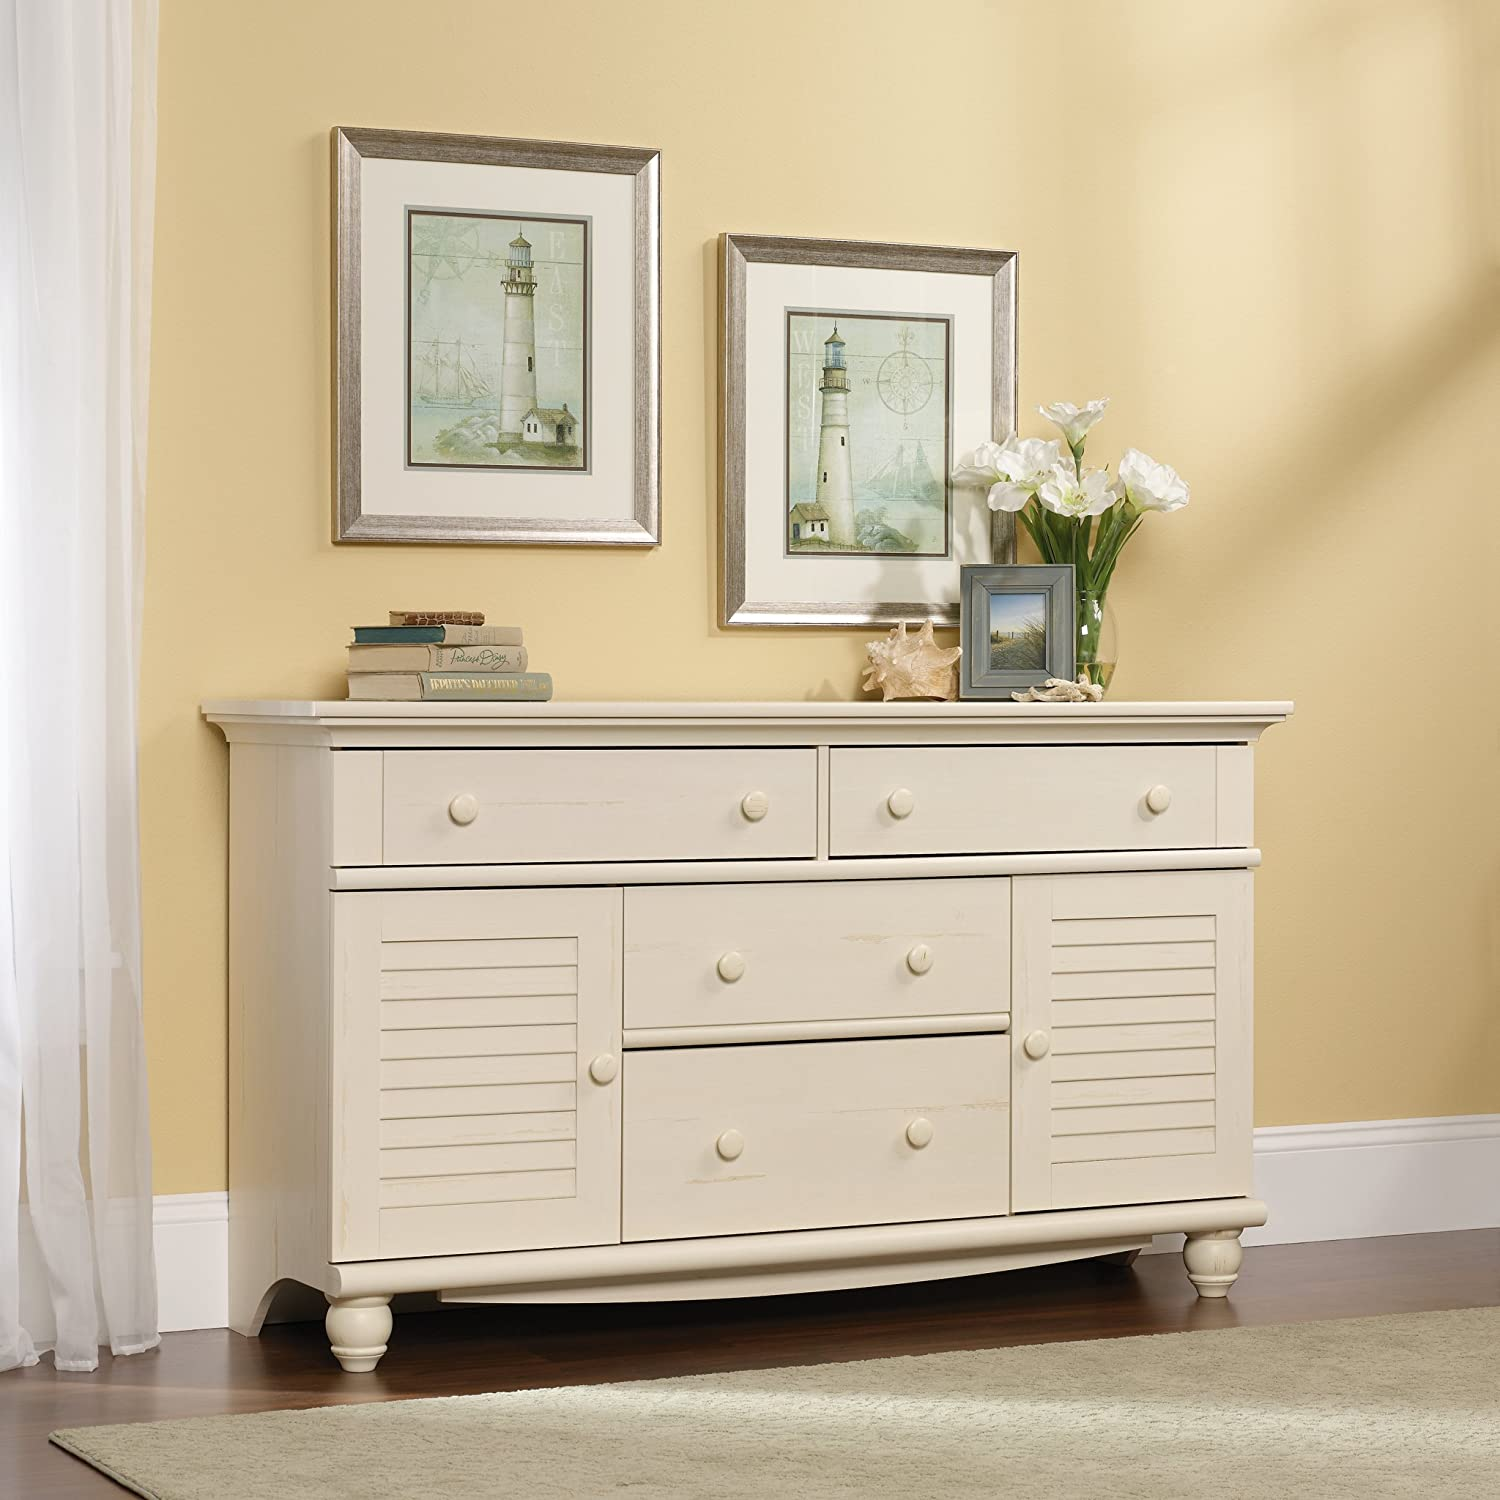 Sauder Harbor View Dresser, Antiqued White finish